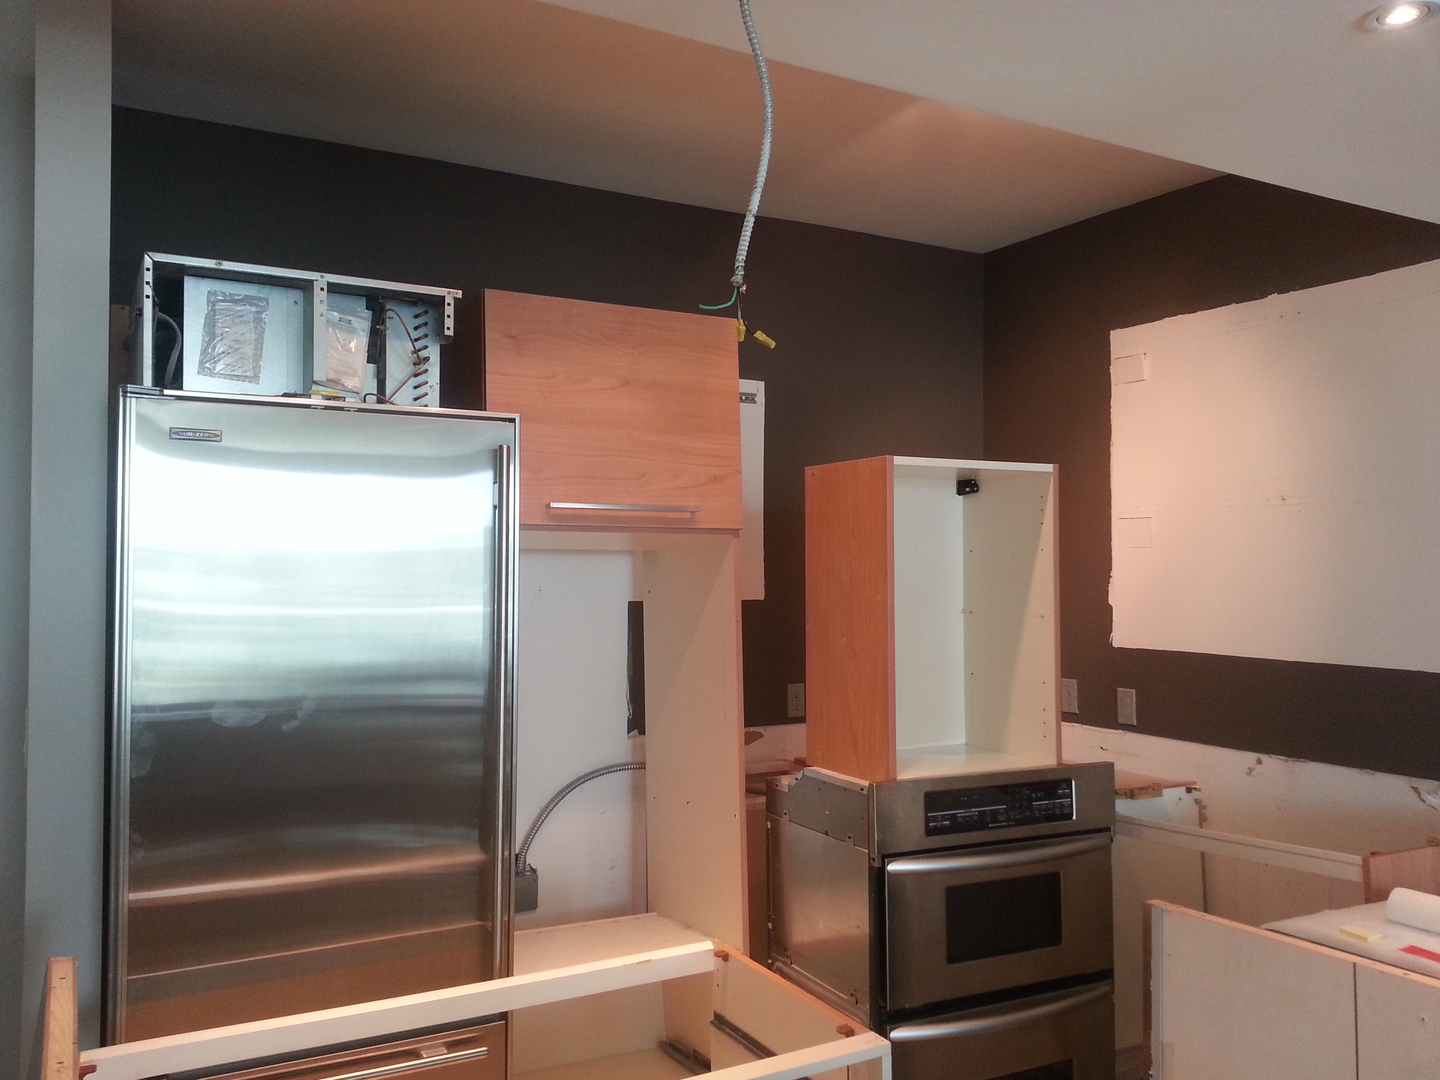 Ikea Kitchen Cabinets Installations In Miami Broward West Palm